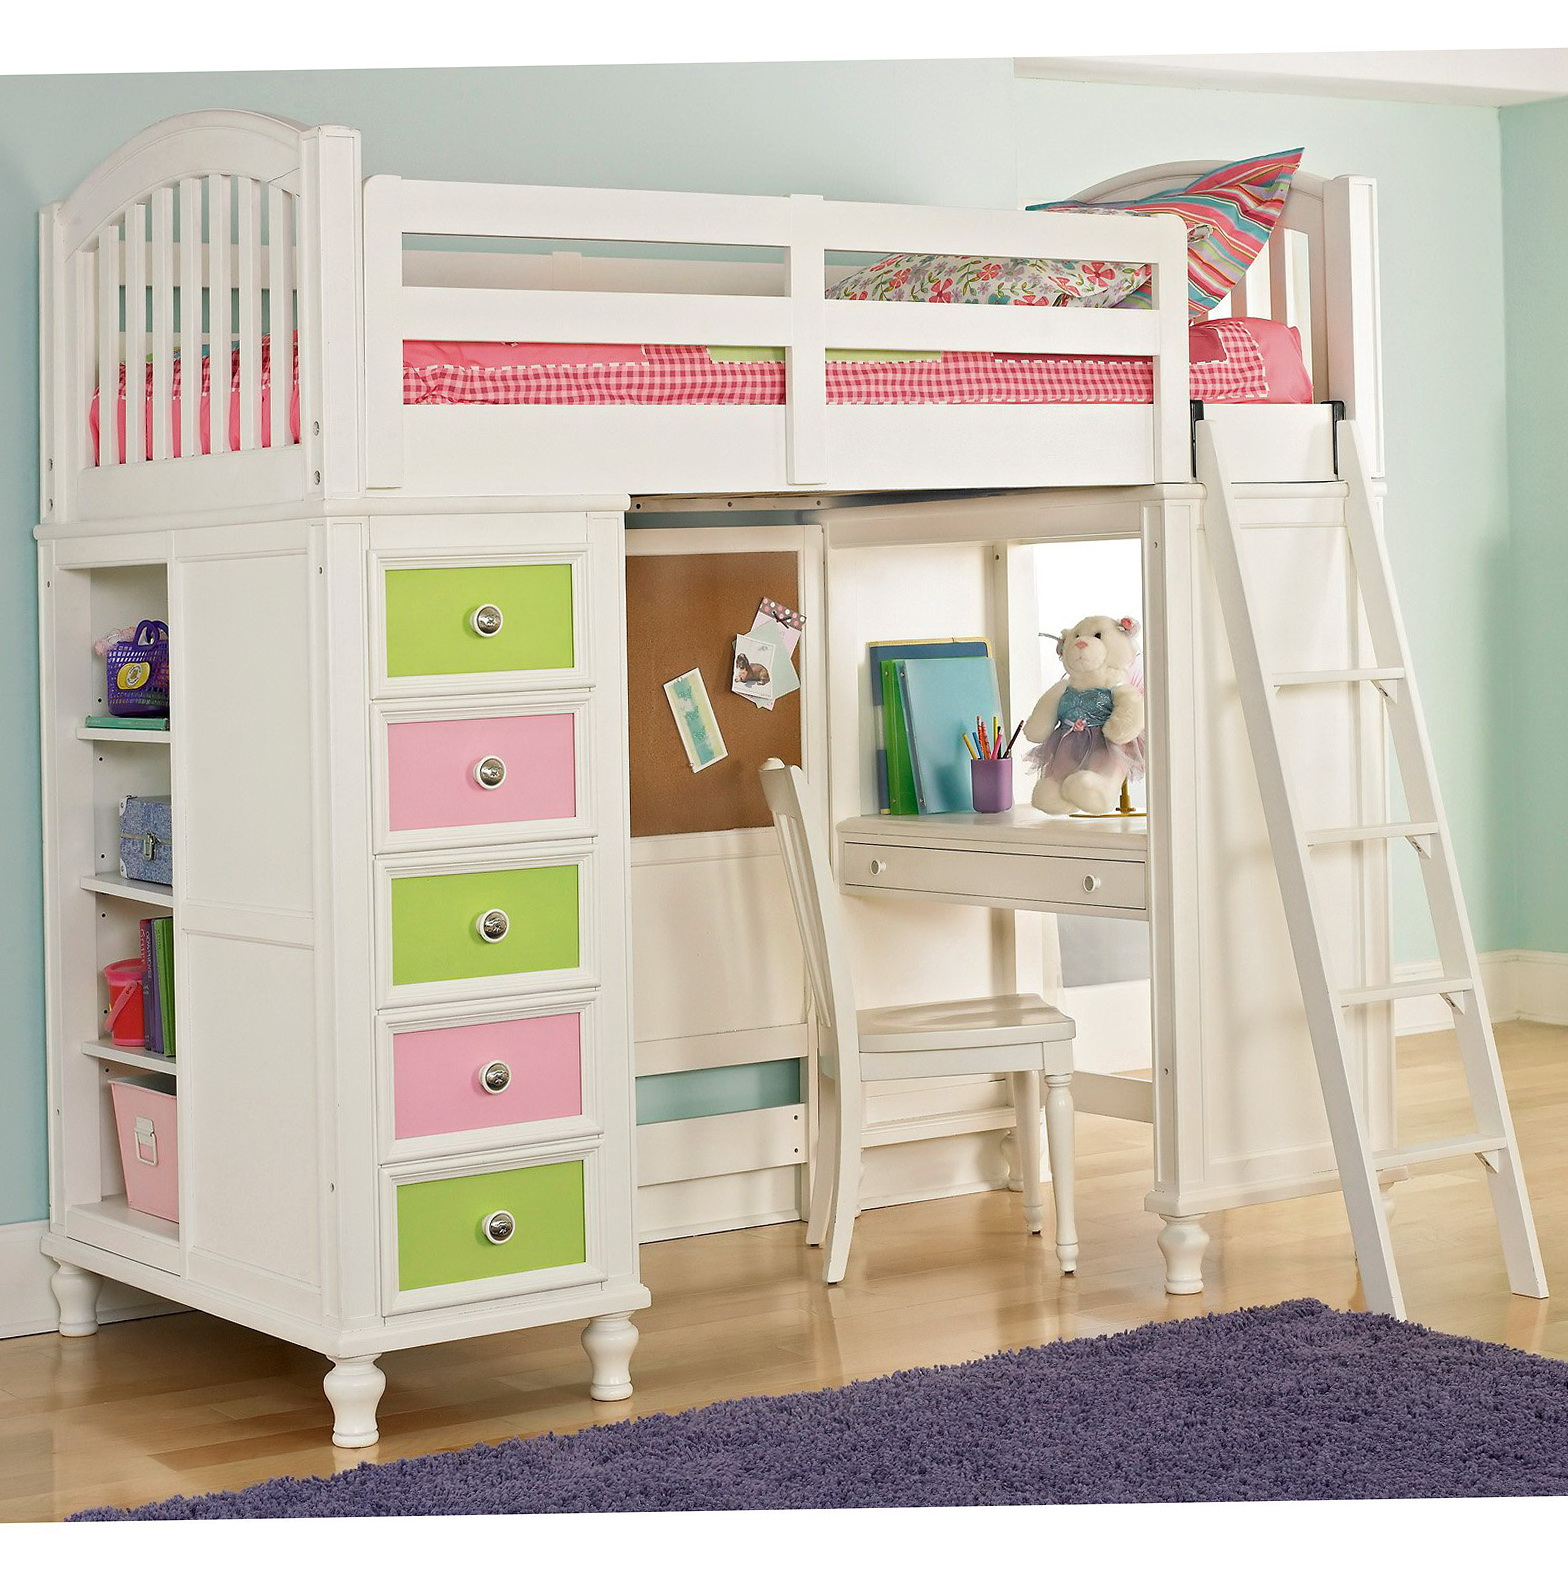 Bunk Bed Desk For Girls